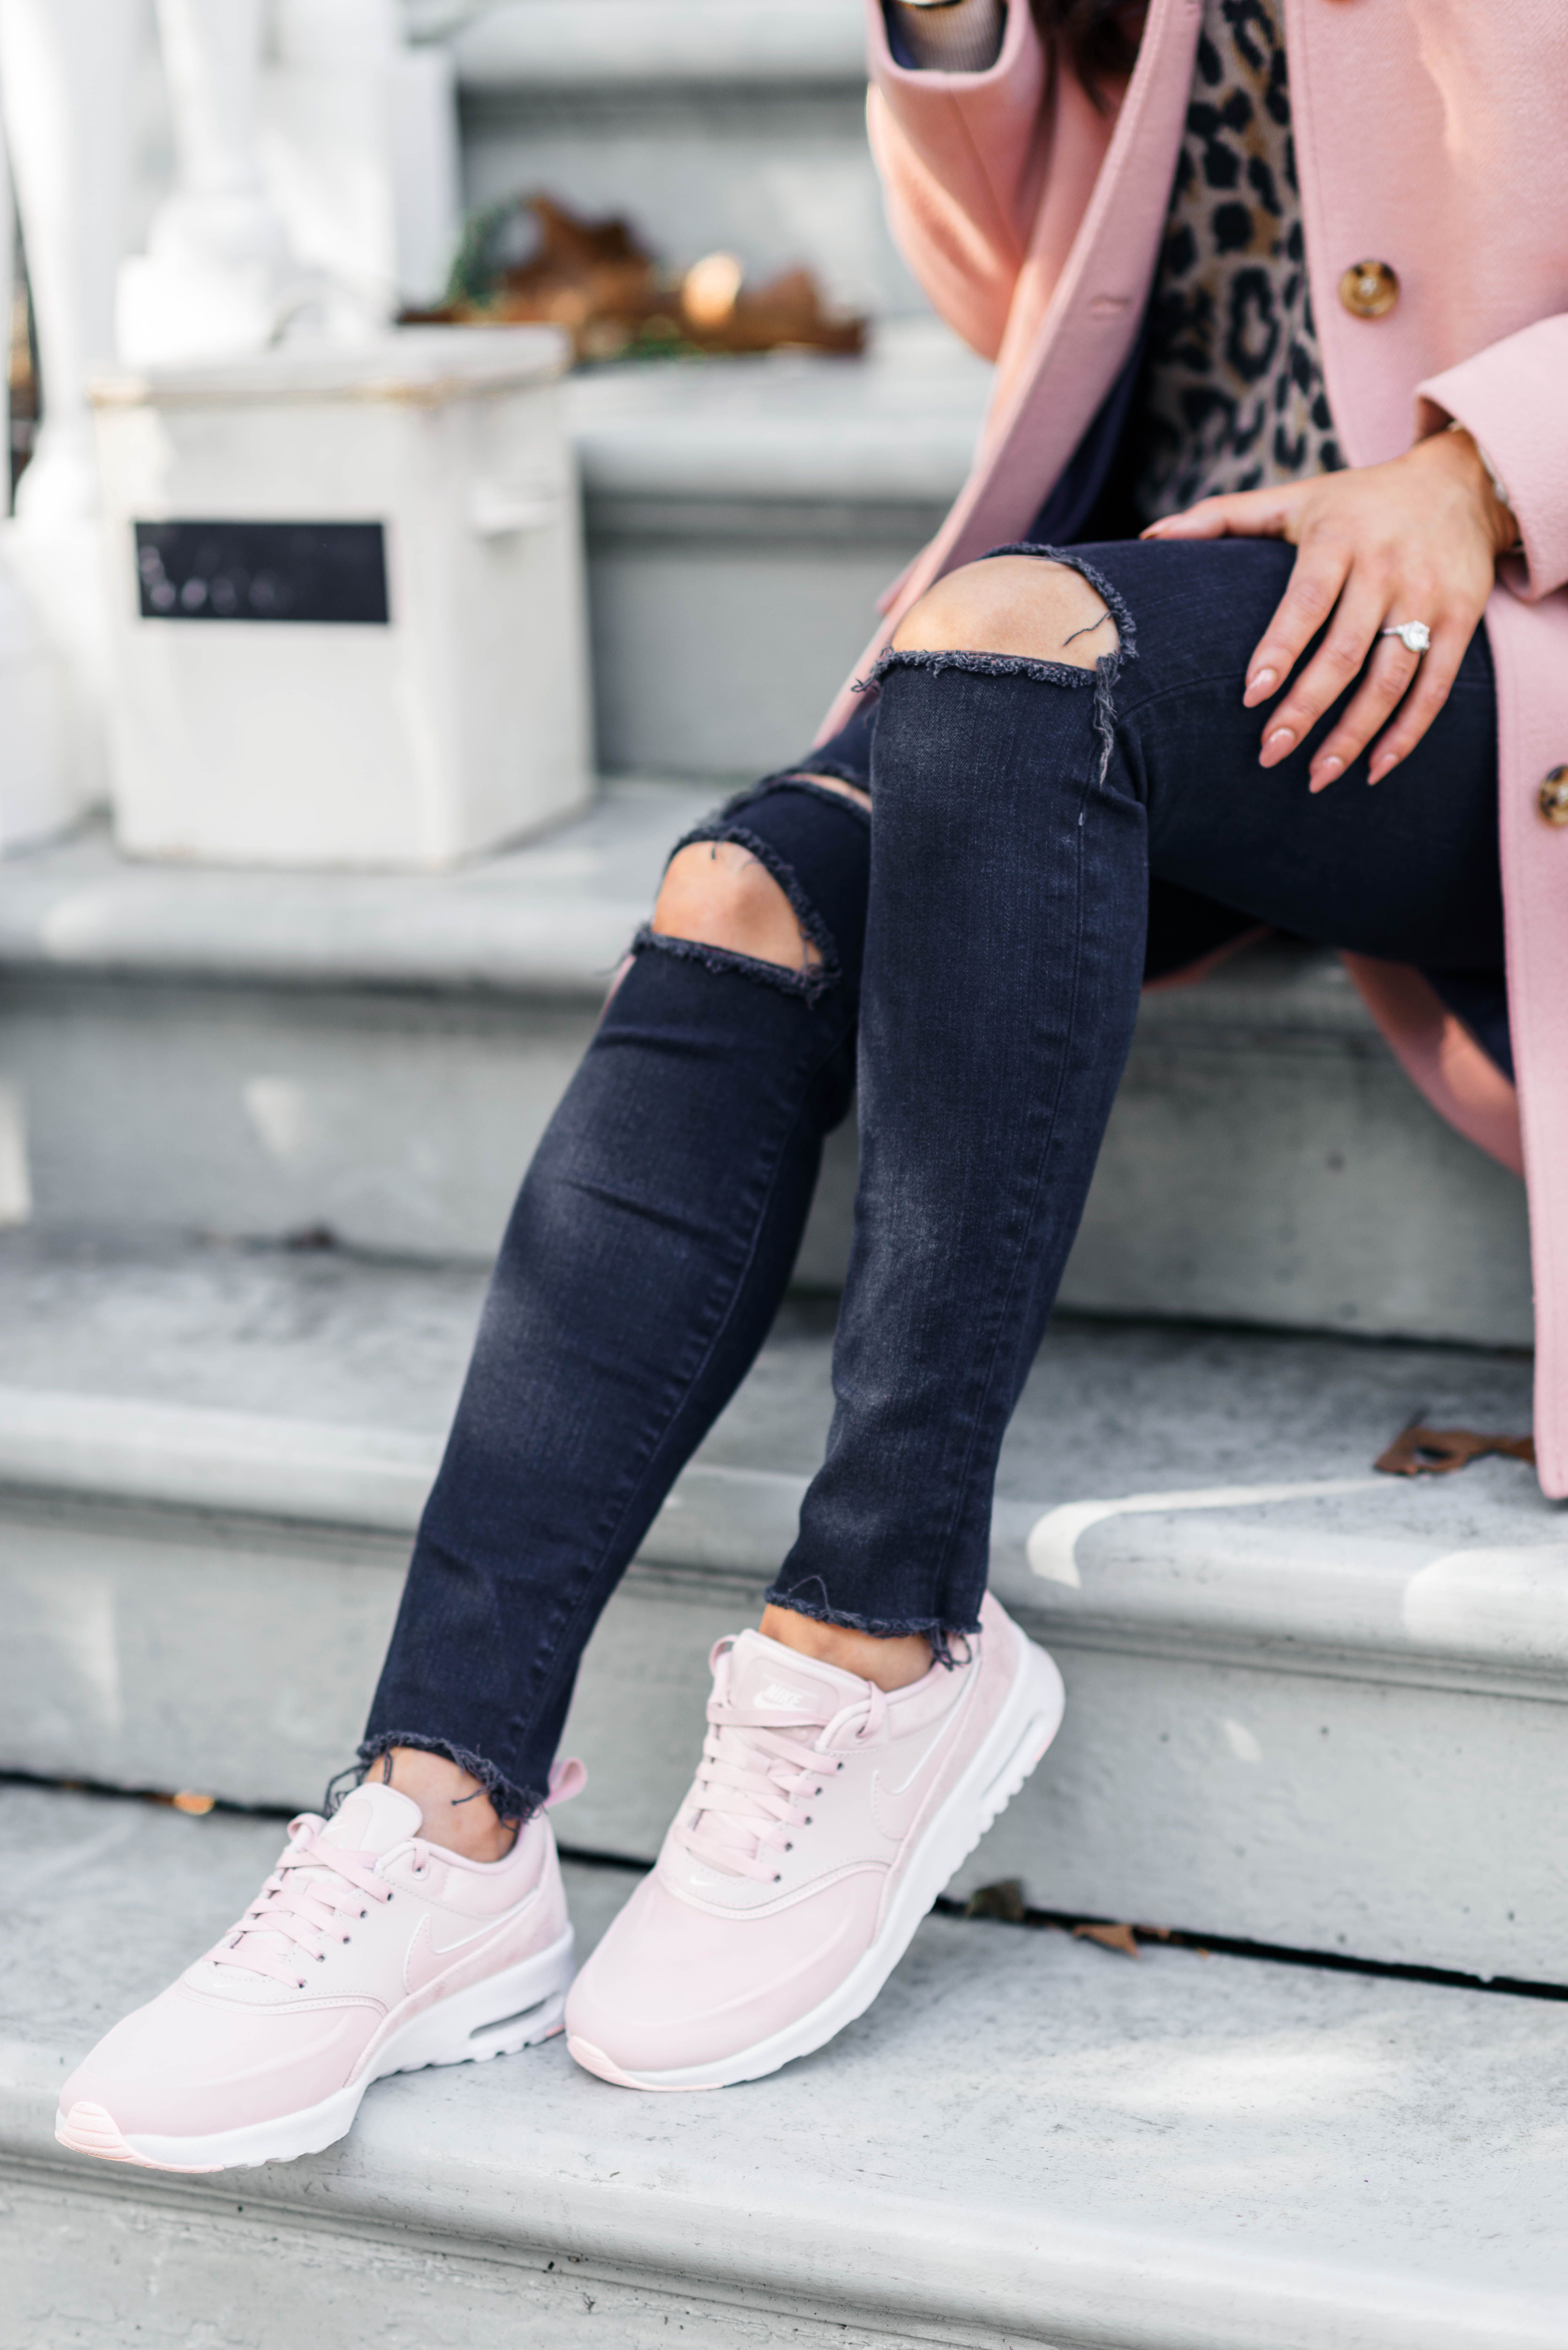 How to Style Sneakers for Fall - Color